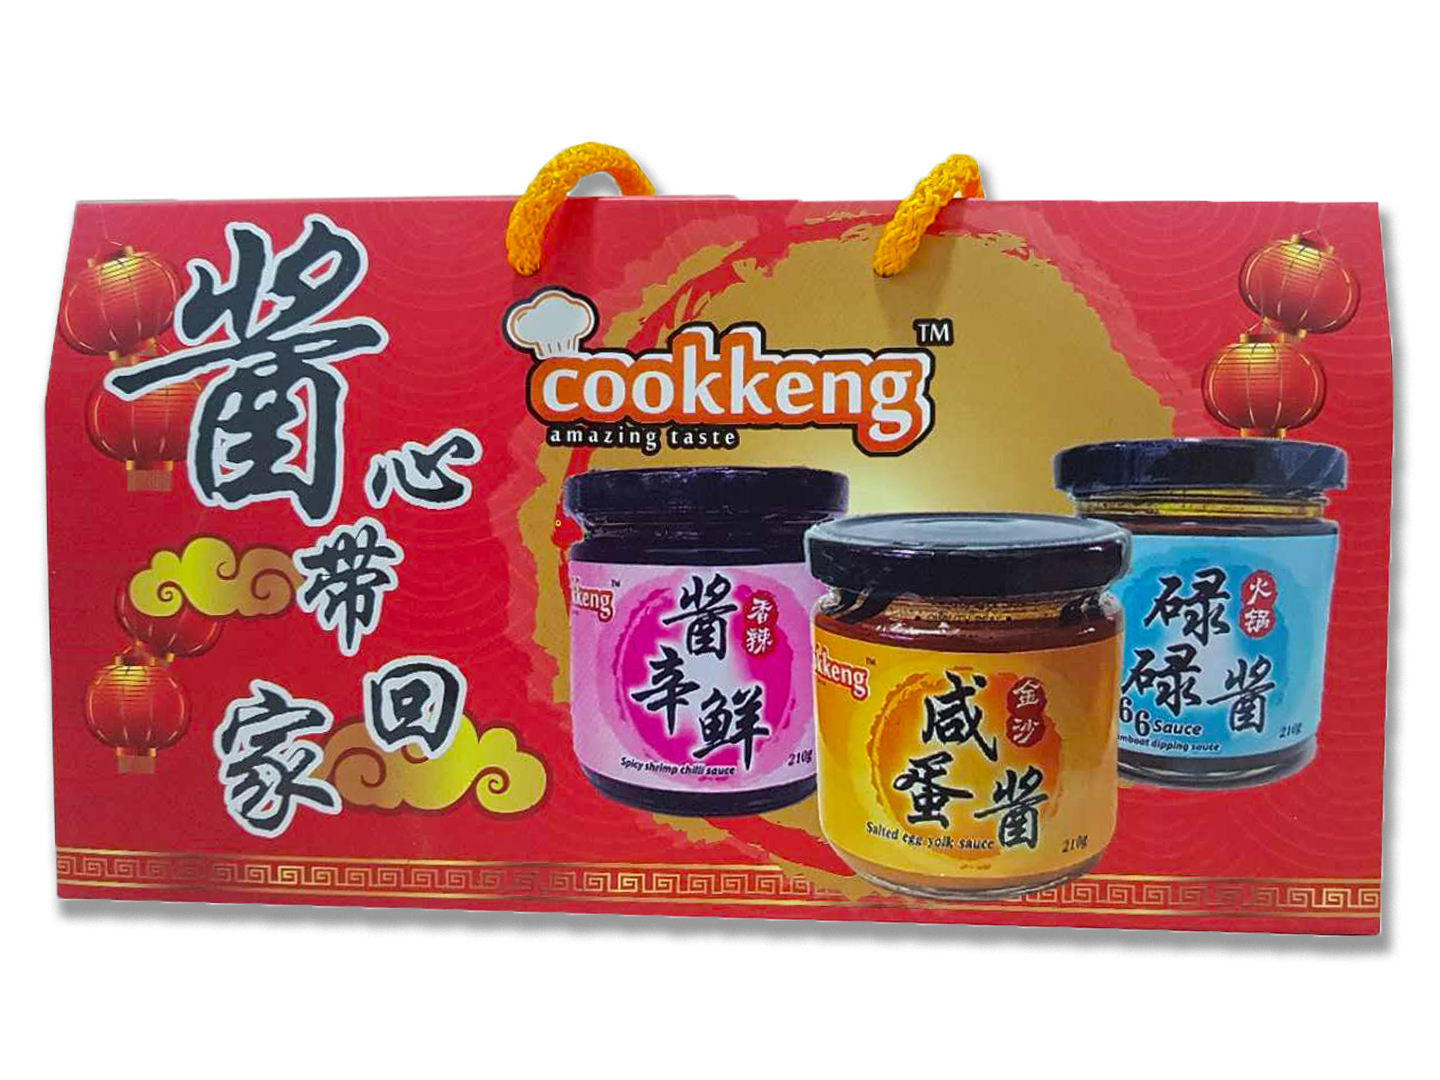 cookkeng_hamper_gift box_ 3 type of sauces